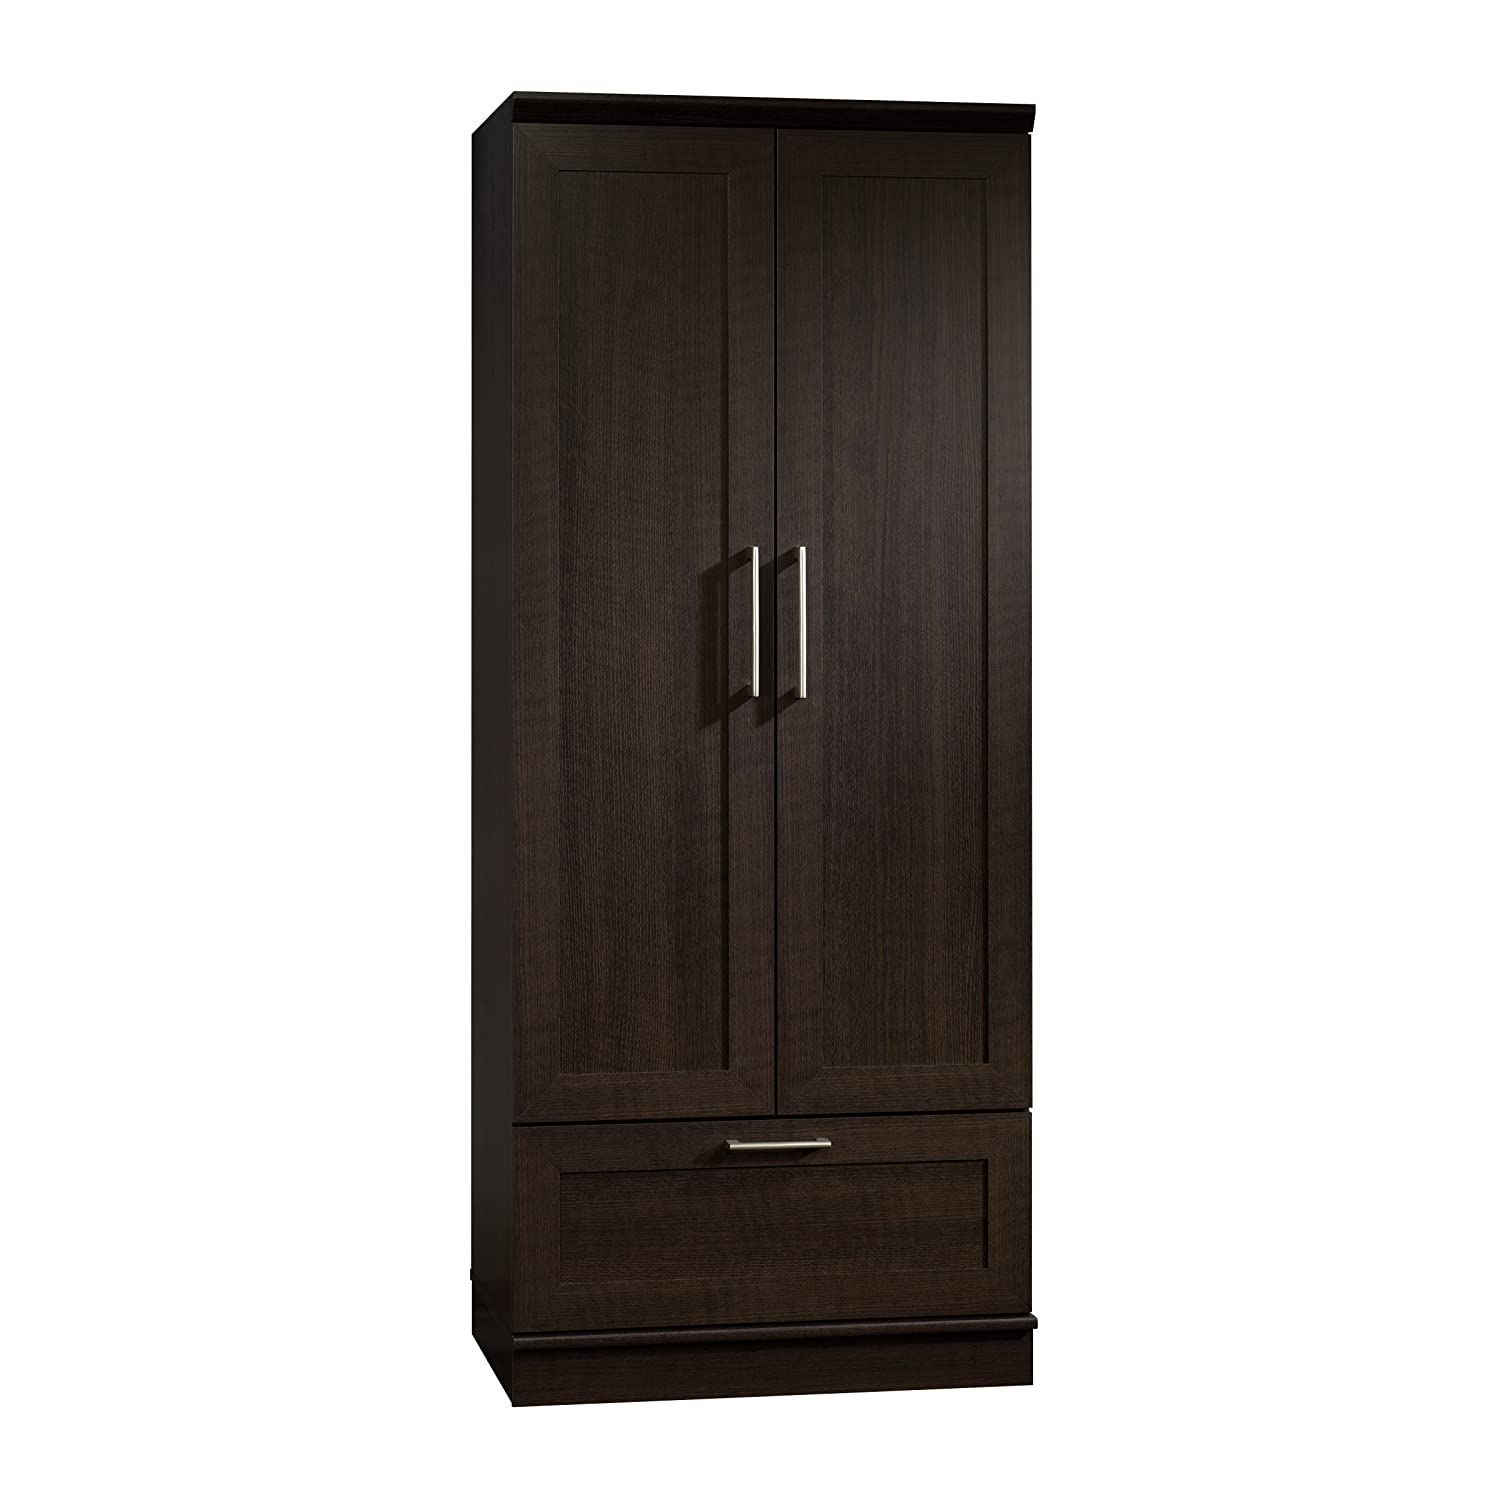 Marvelous photograph of Armoire Wardrobe Closet Storage Drawer Wood Bedroom Furniture Clothes  with #2A231D color and 1500x1500 pixels